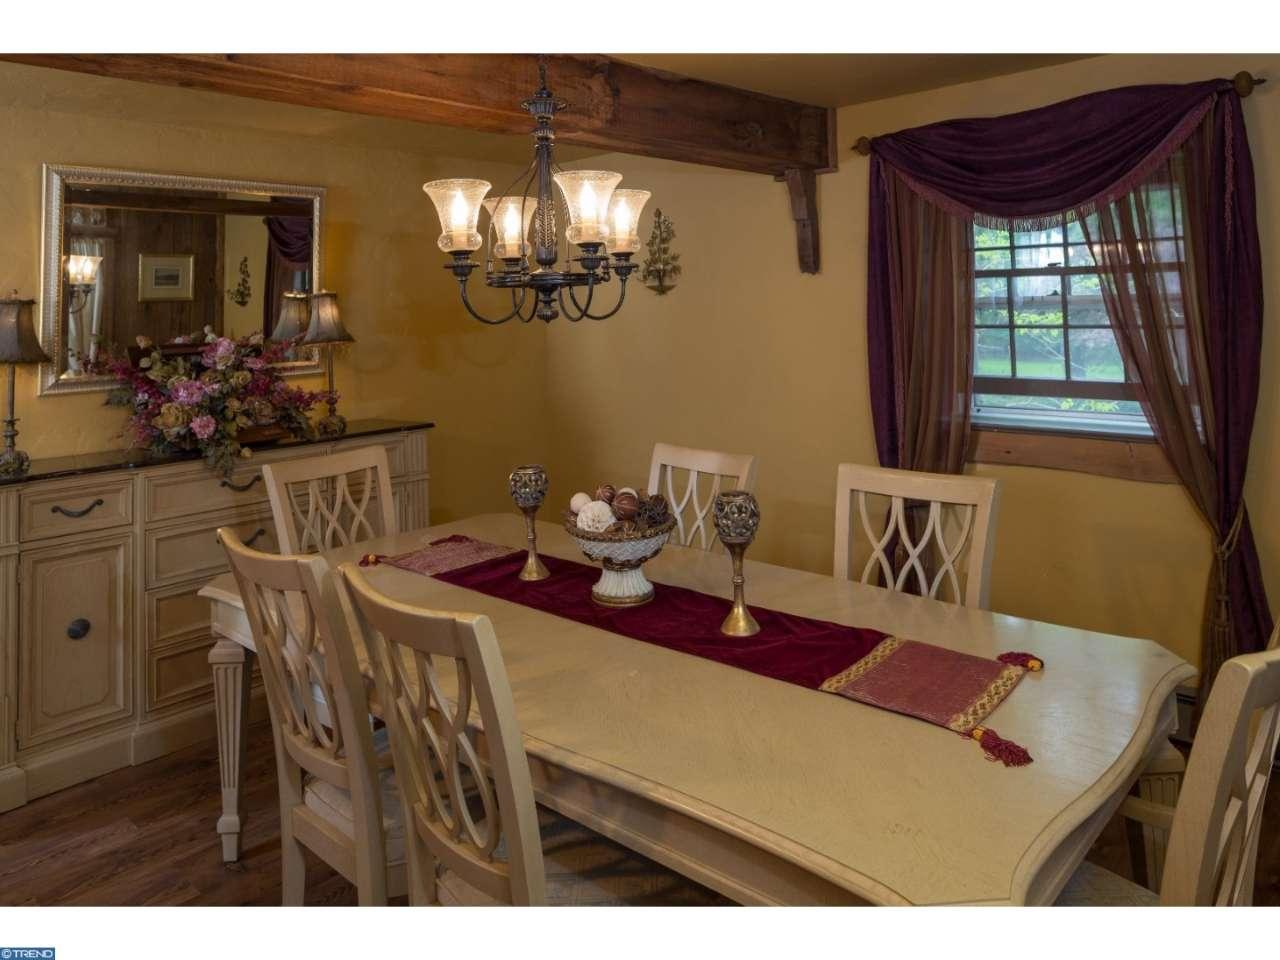 The Leap Year Barn 115 Arrons Ave Doylestown PA for sale - dining room